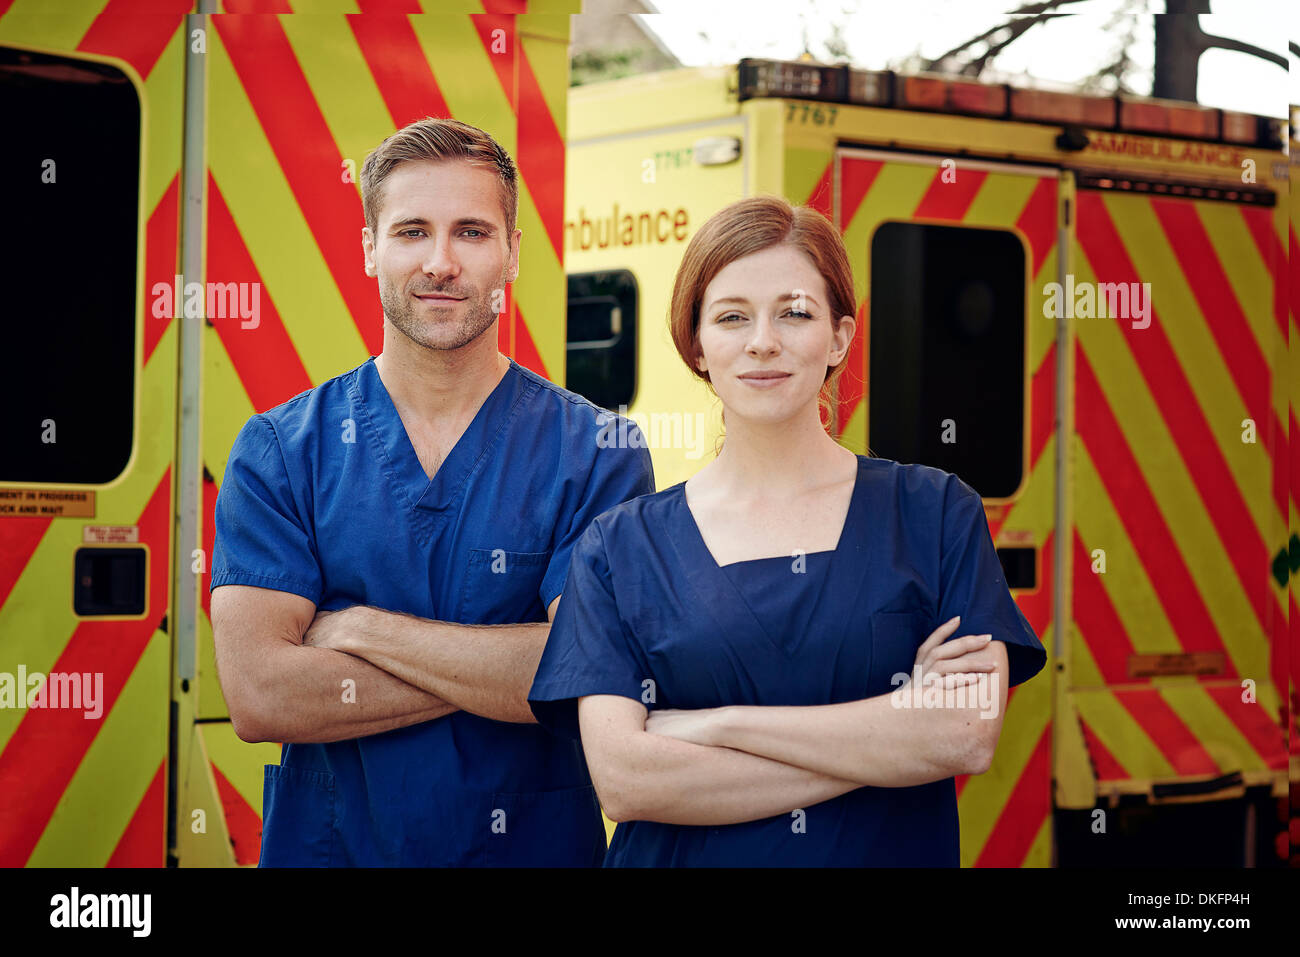 Portrait of two emergency medical technicians next to ambulance - Stock Image